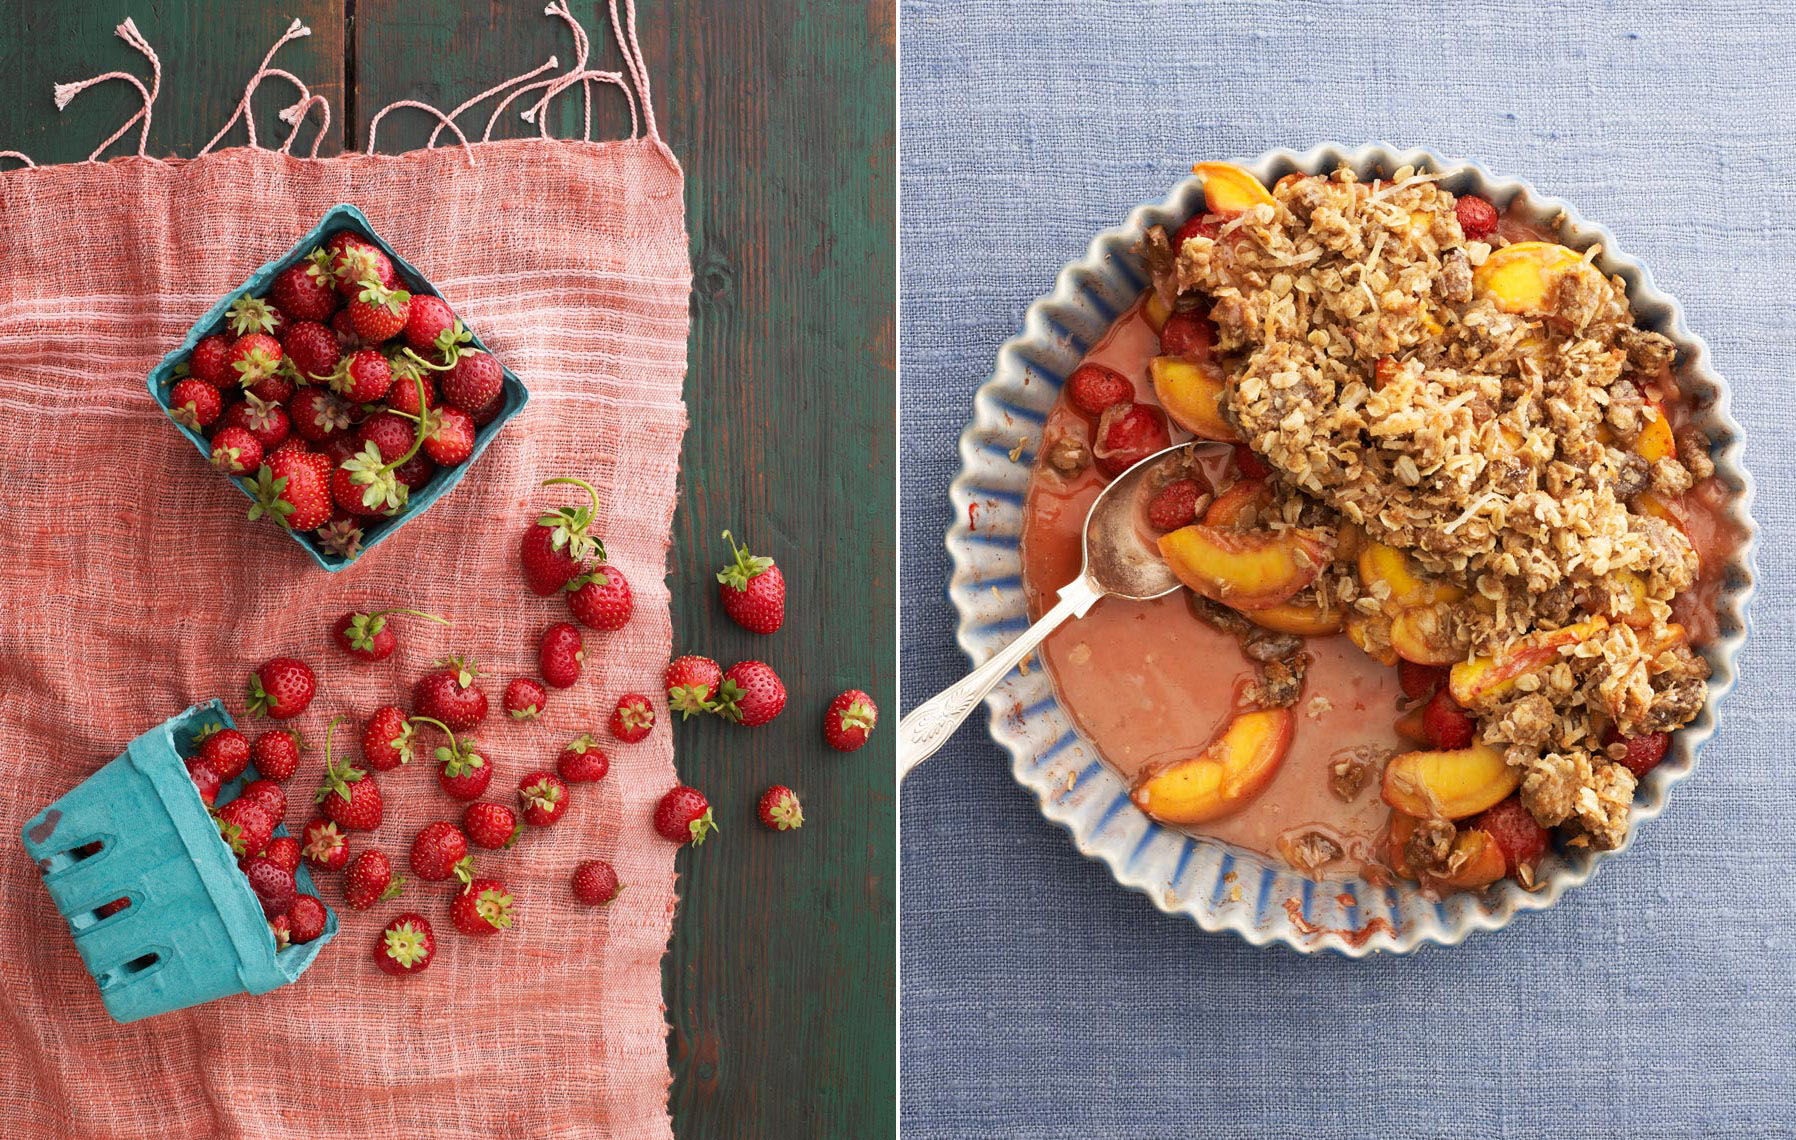 Summer Strawberry Peach Crumble